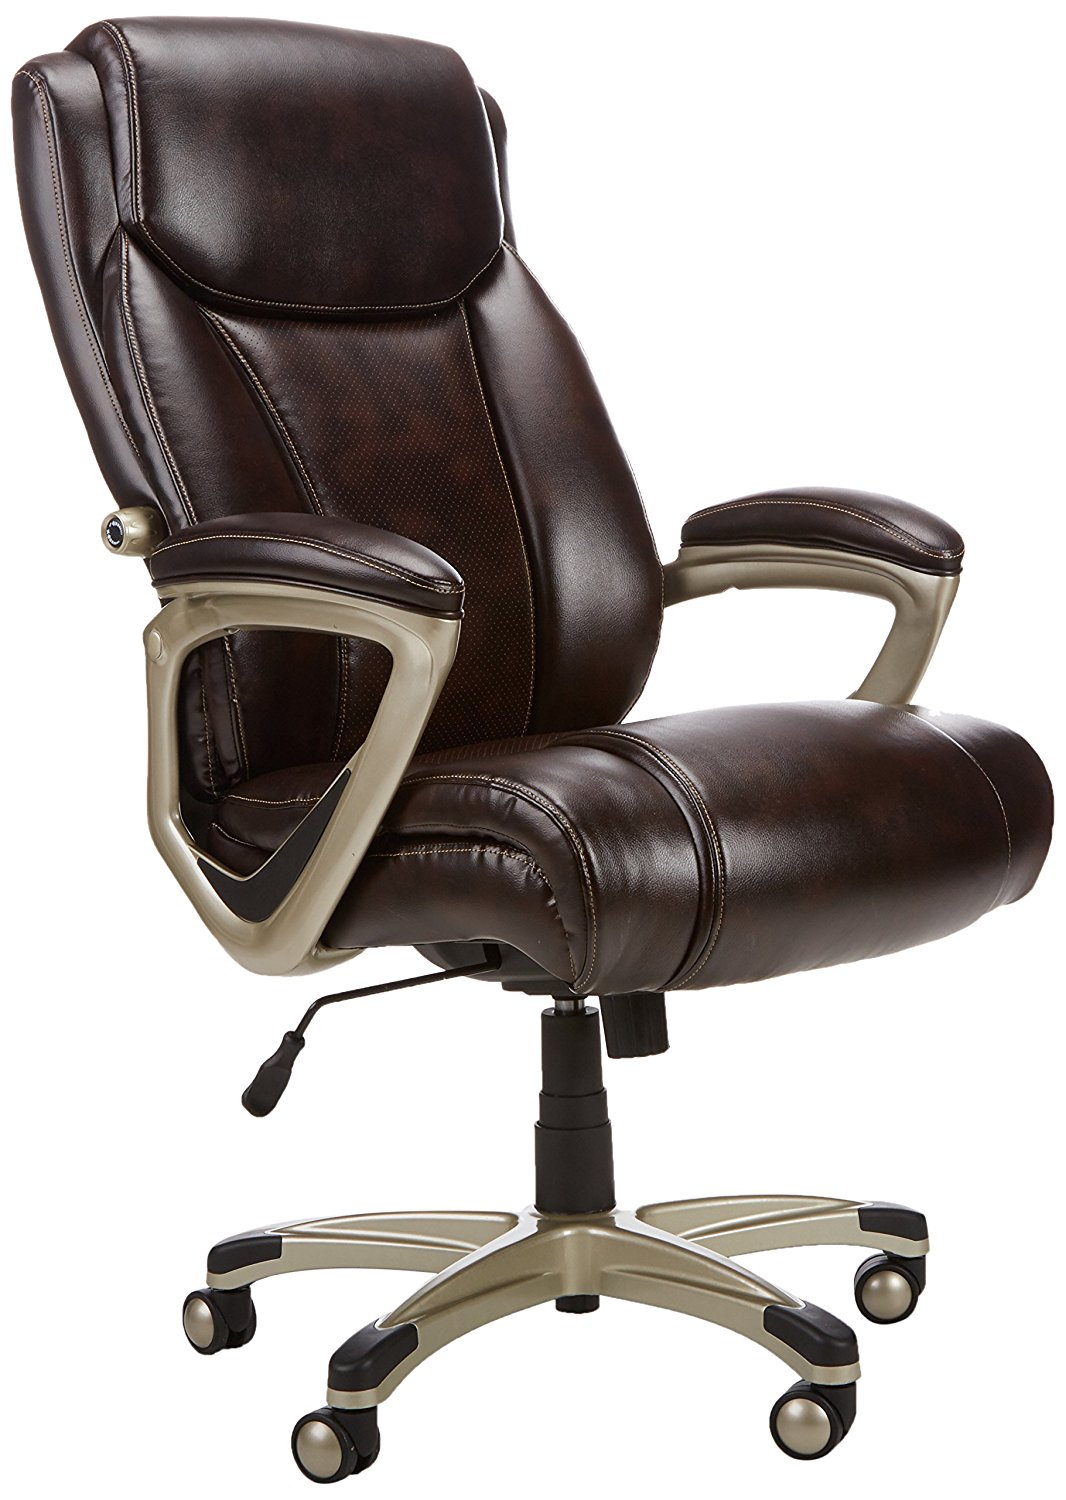 most comfortable office chair under $200